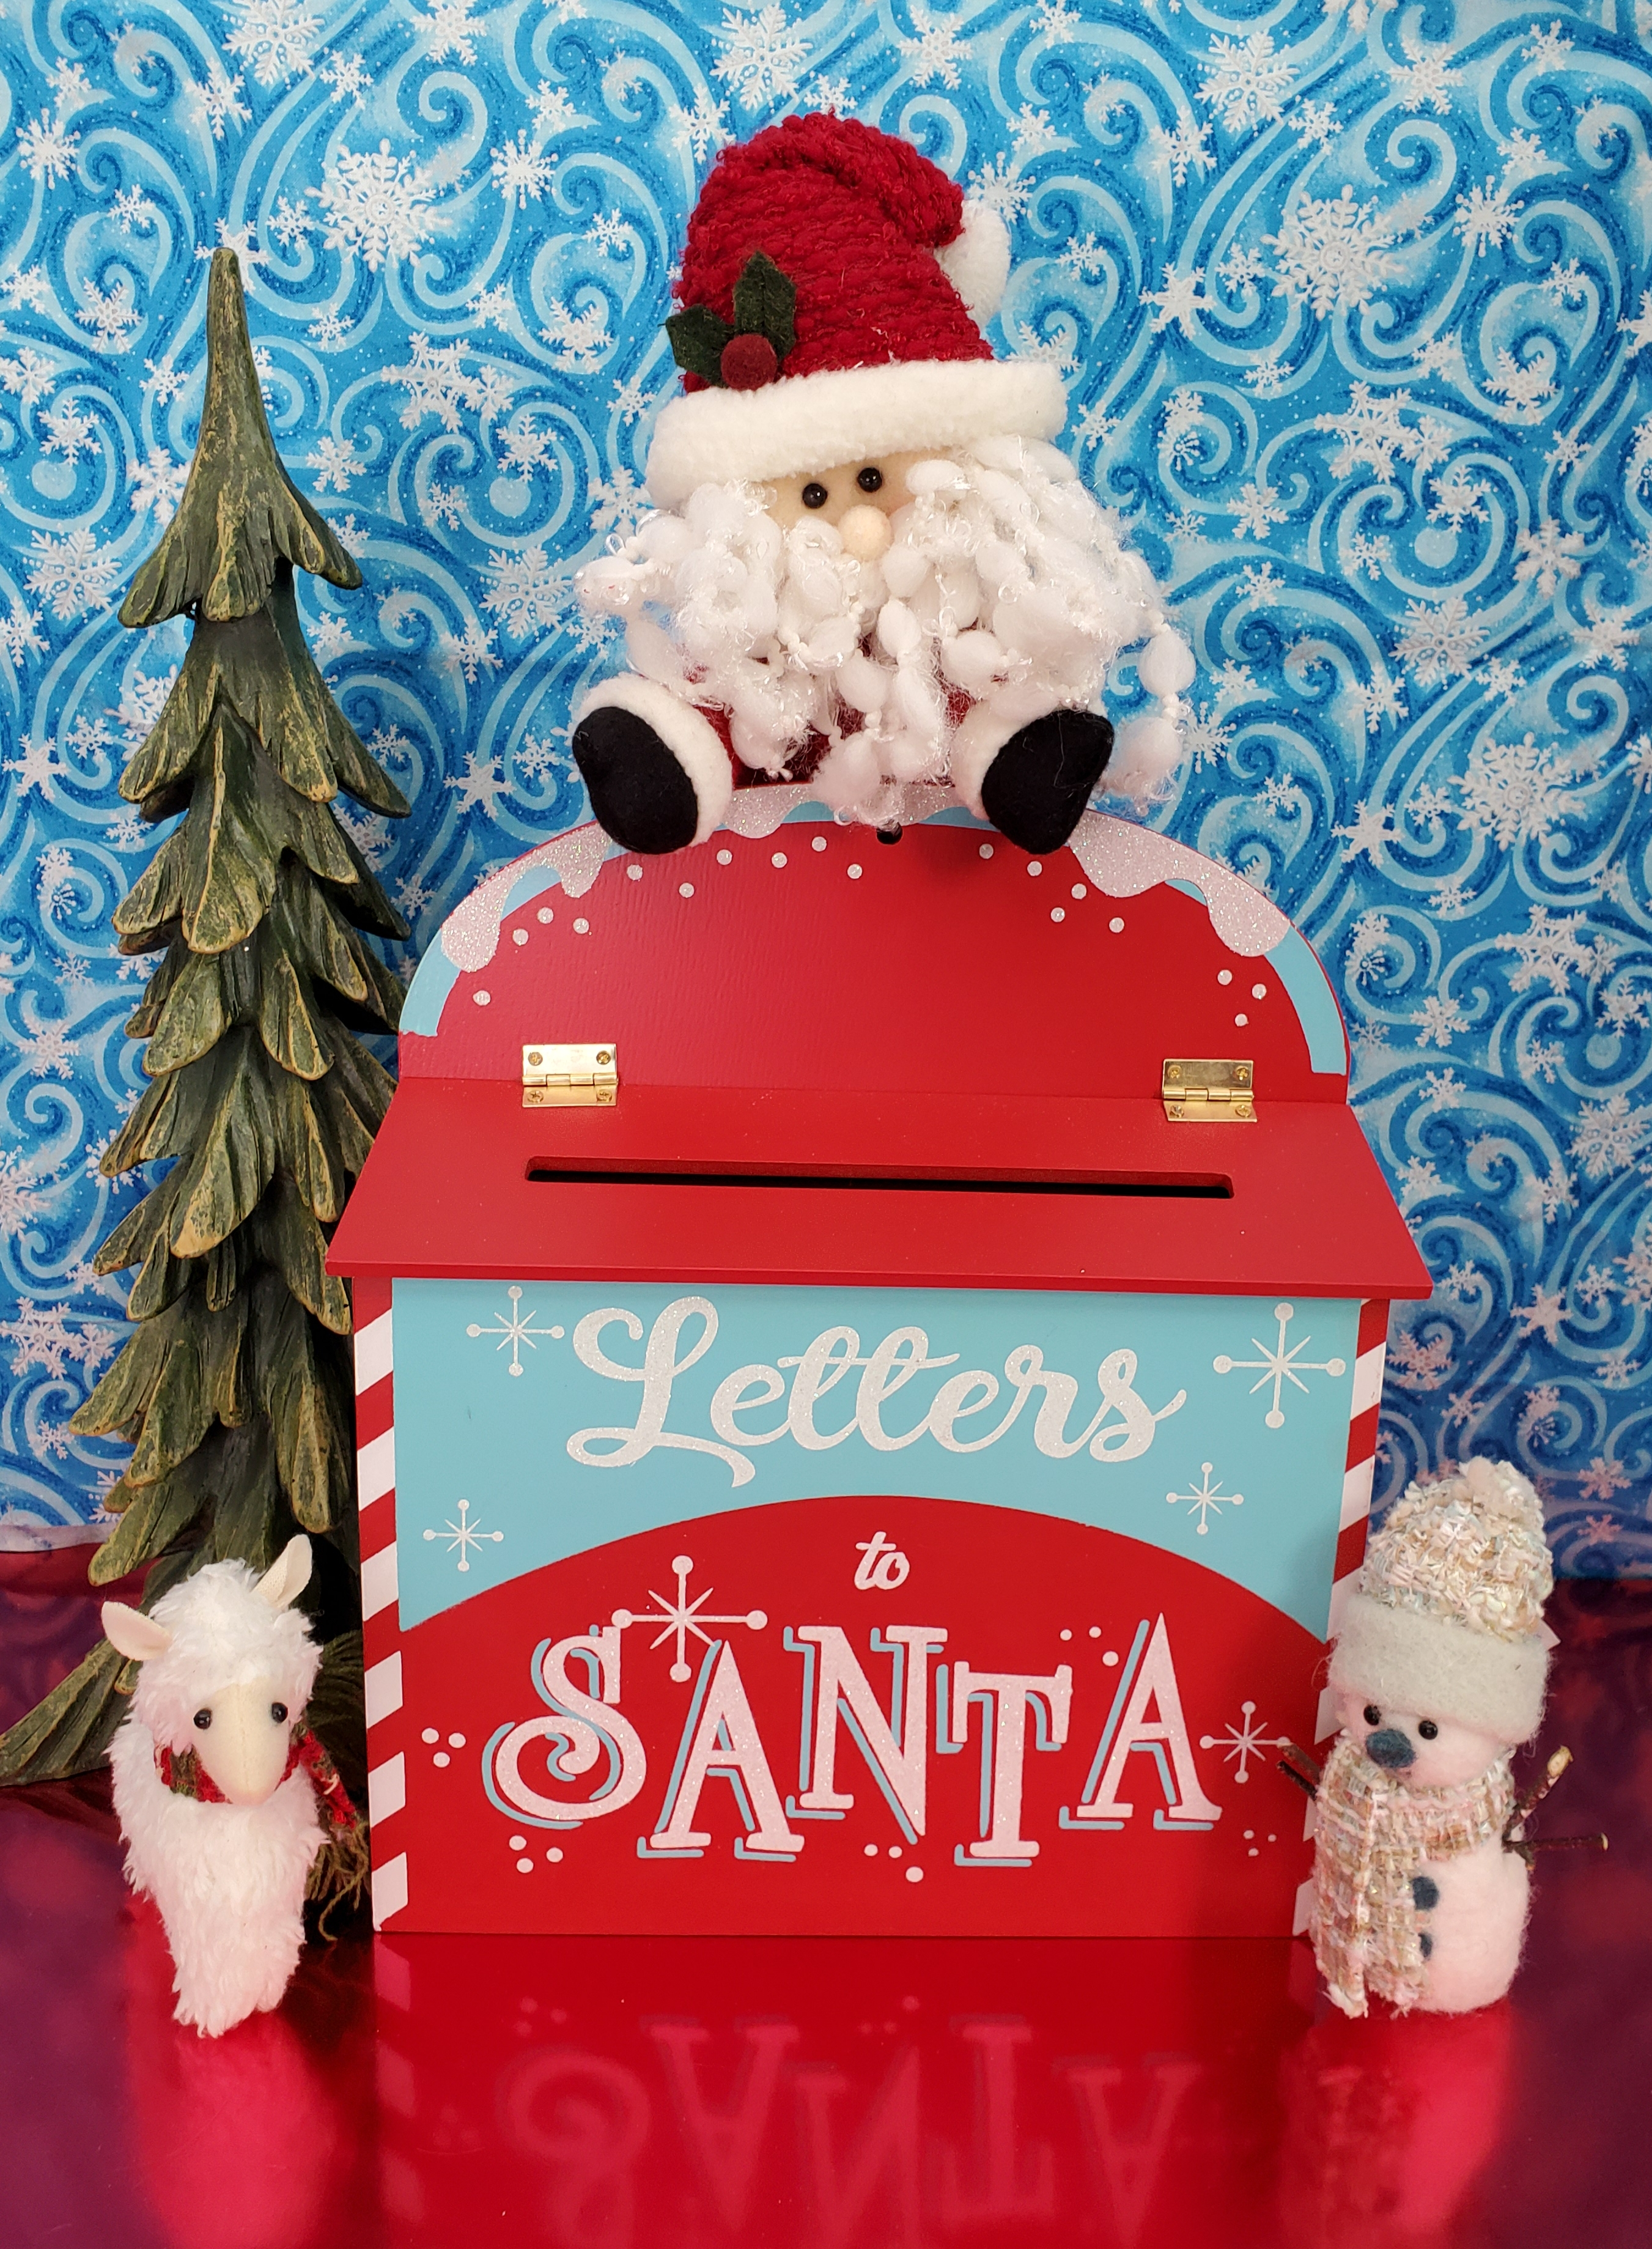 Letters to Santa photo